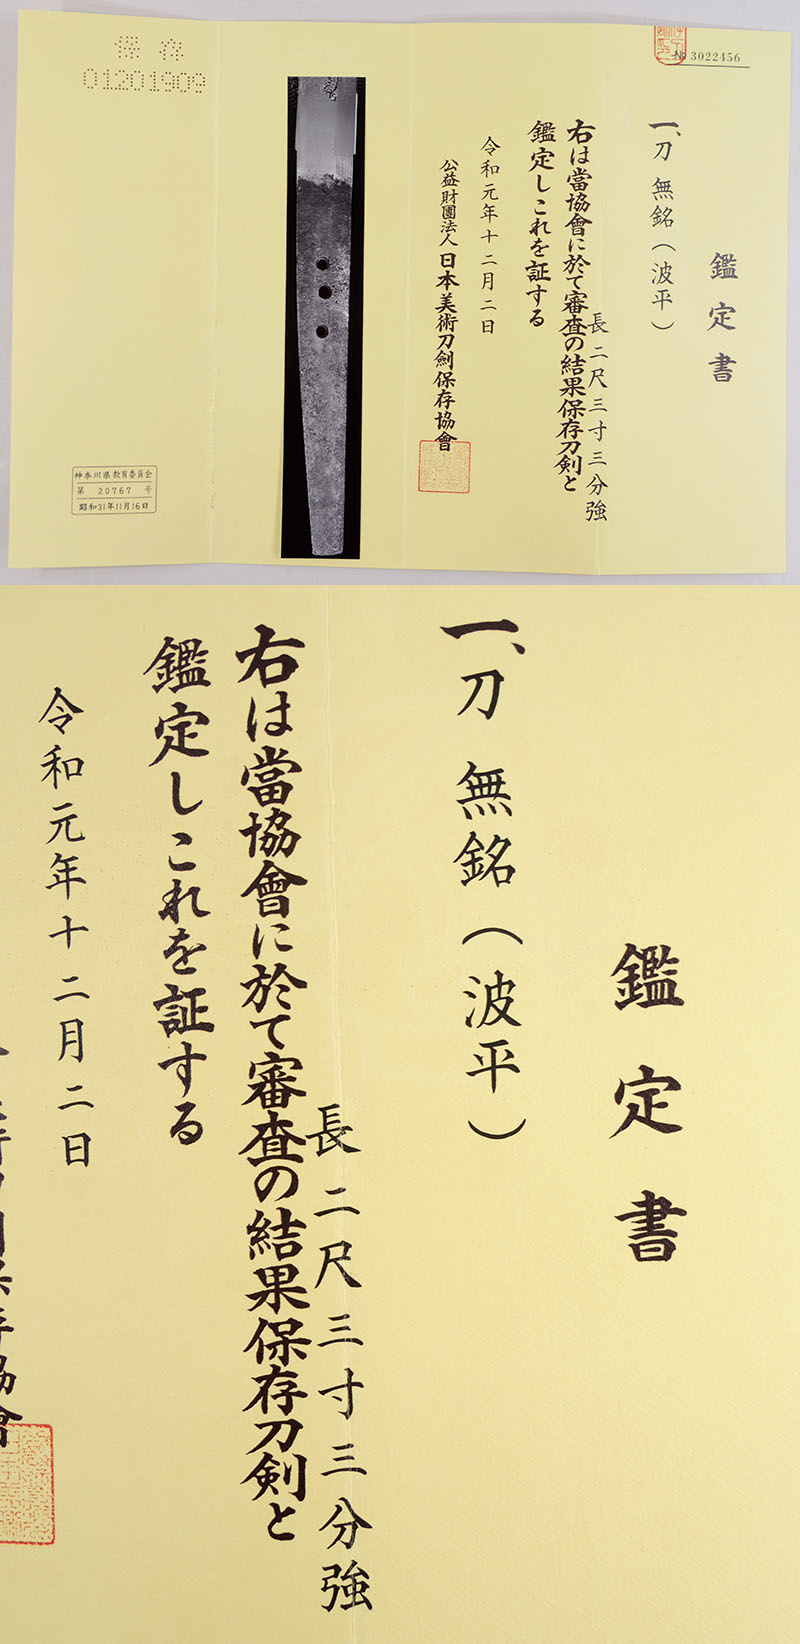 無銘(波平) Picture of Certificate